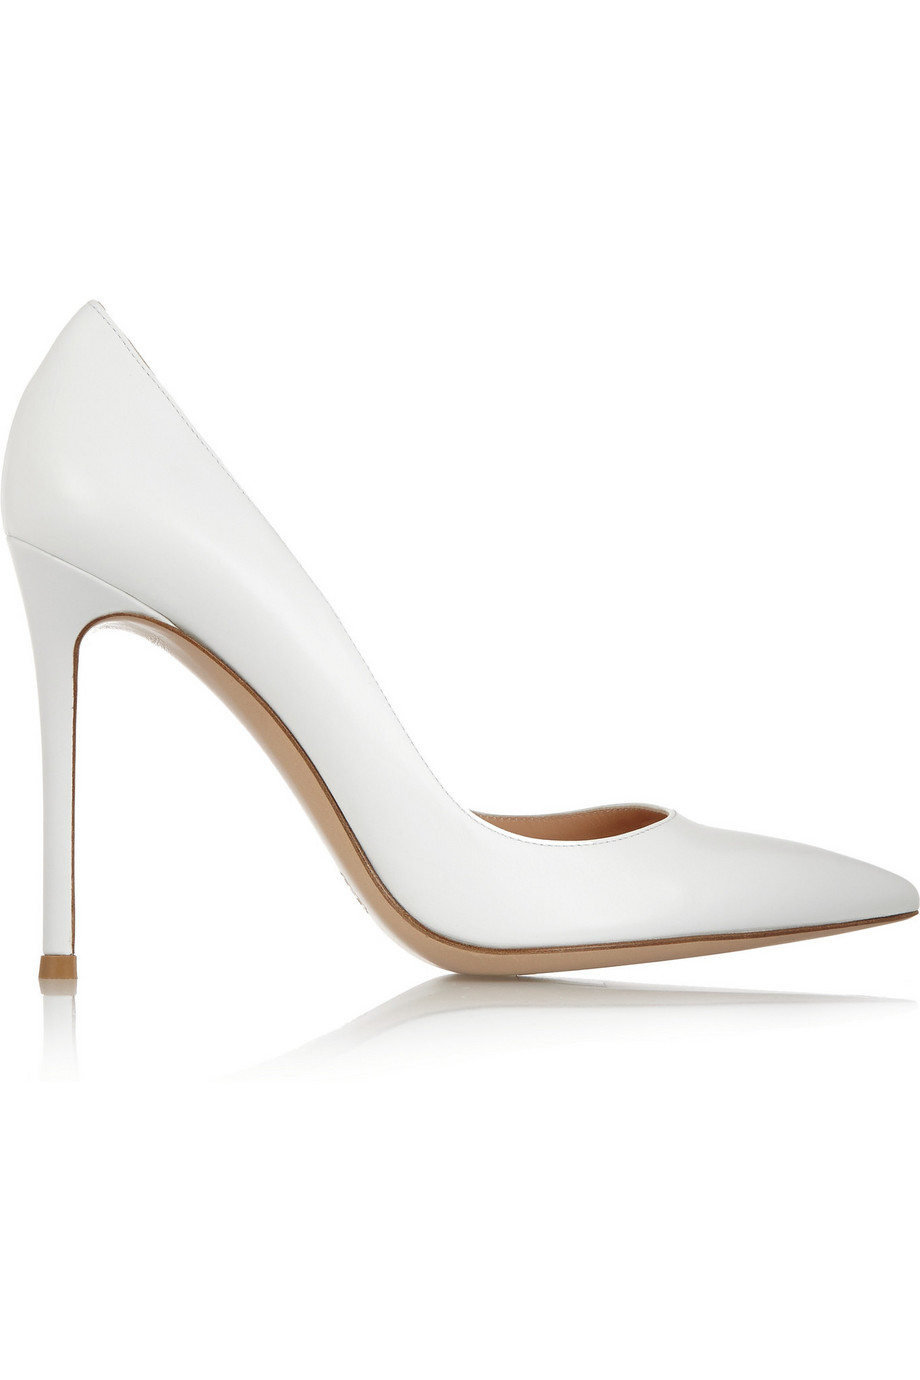 Gianvito Rossi Leather Pumps, White, Women's US Size: 7.5, Size: 38